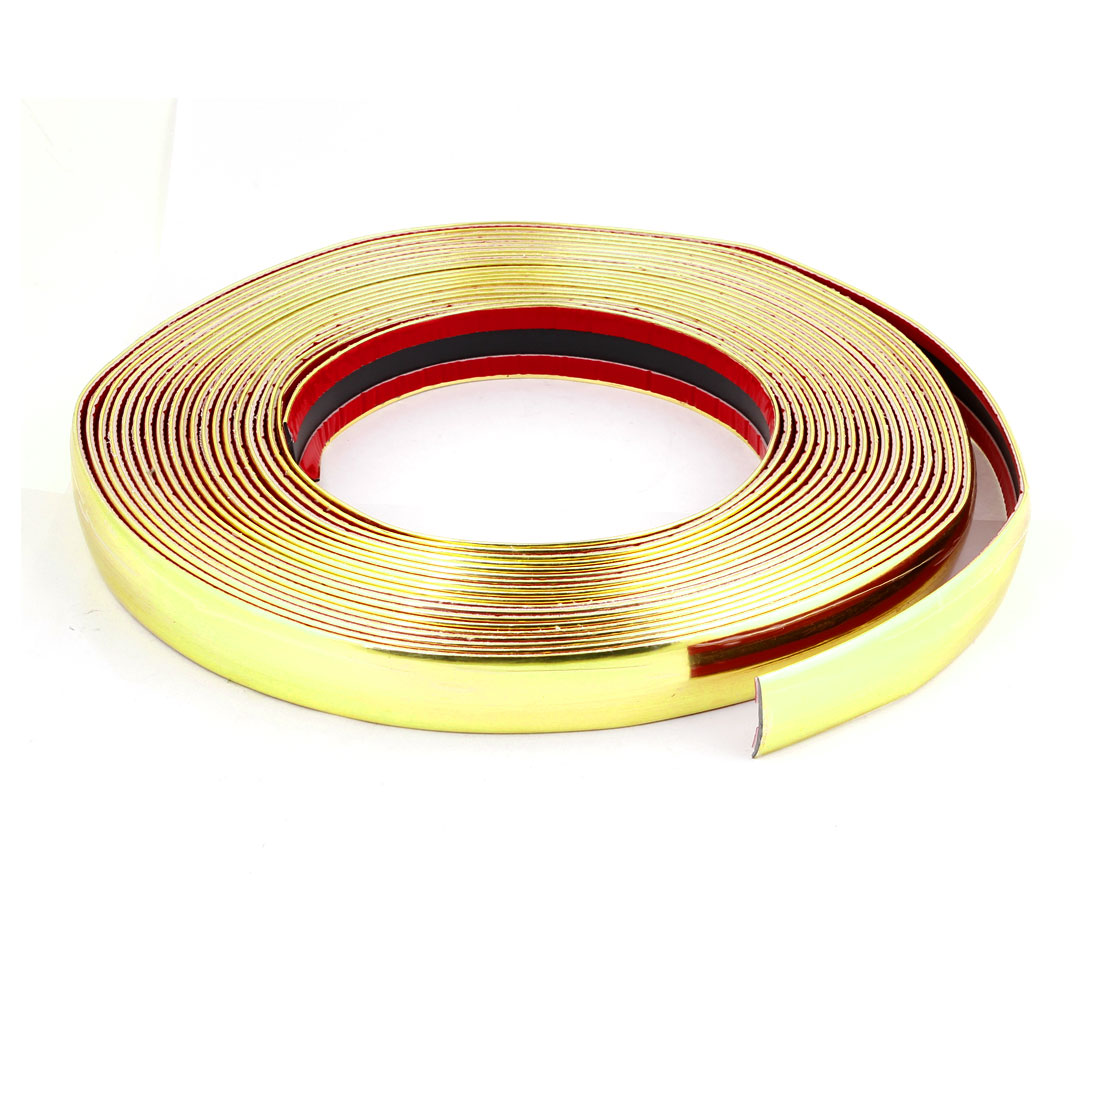 15M x 25mm Flexible Plastic Moulding Trim Strip Gold Tone for Auto Car